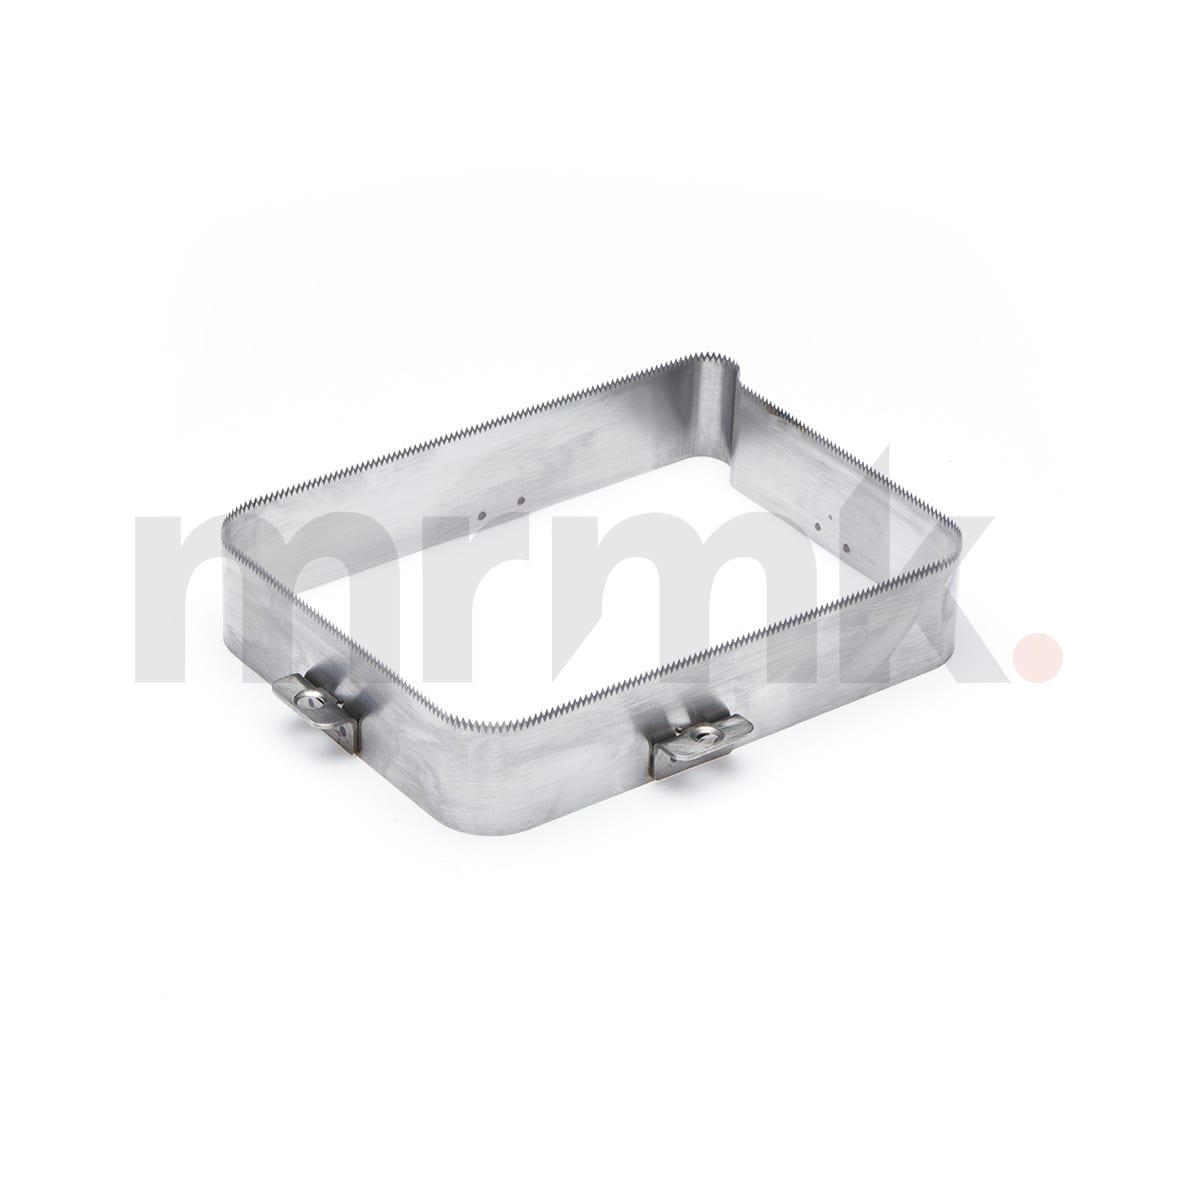 Multivac Compatible Tray Seal Knife